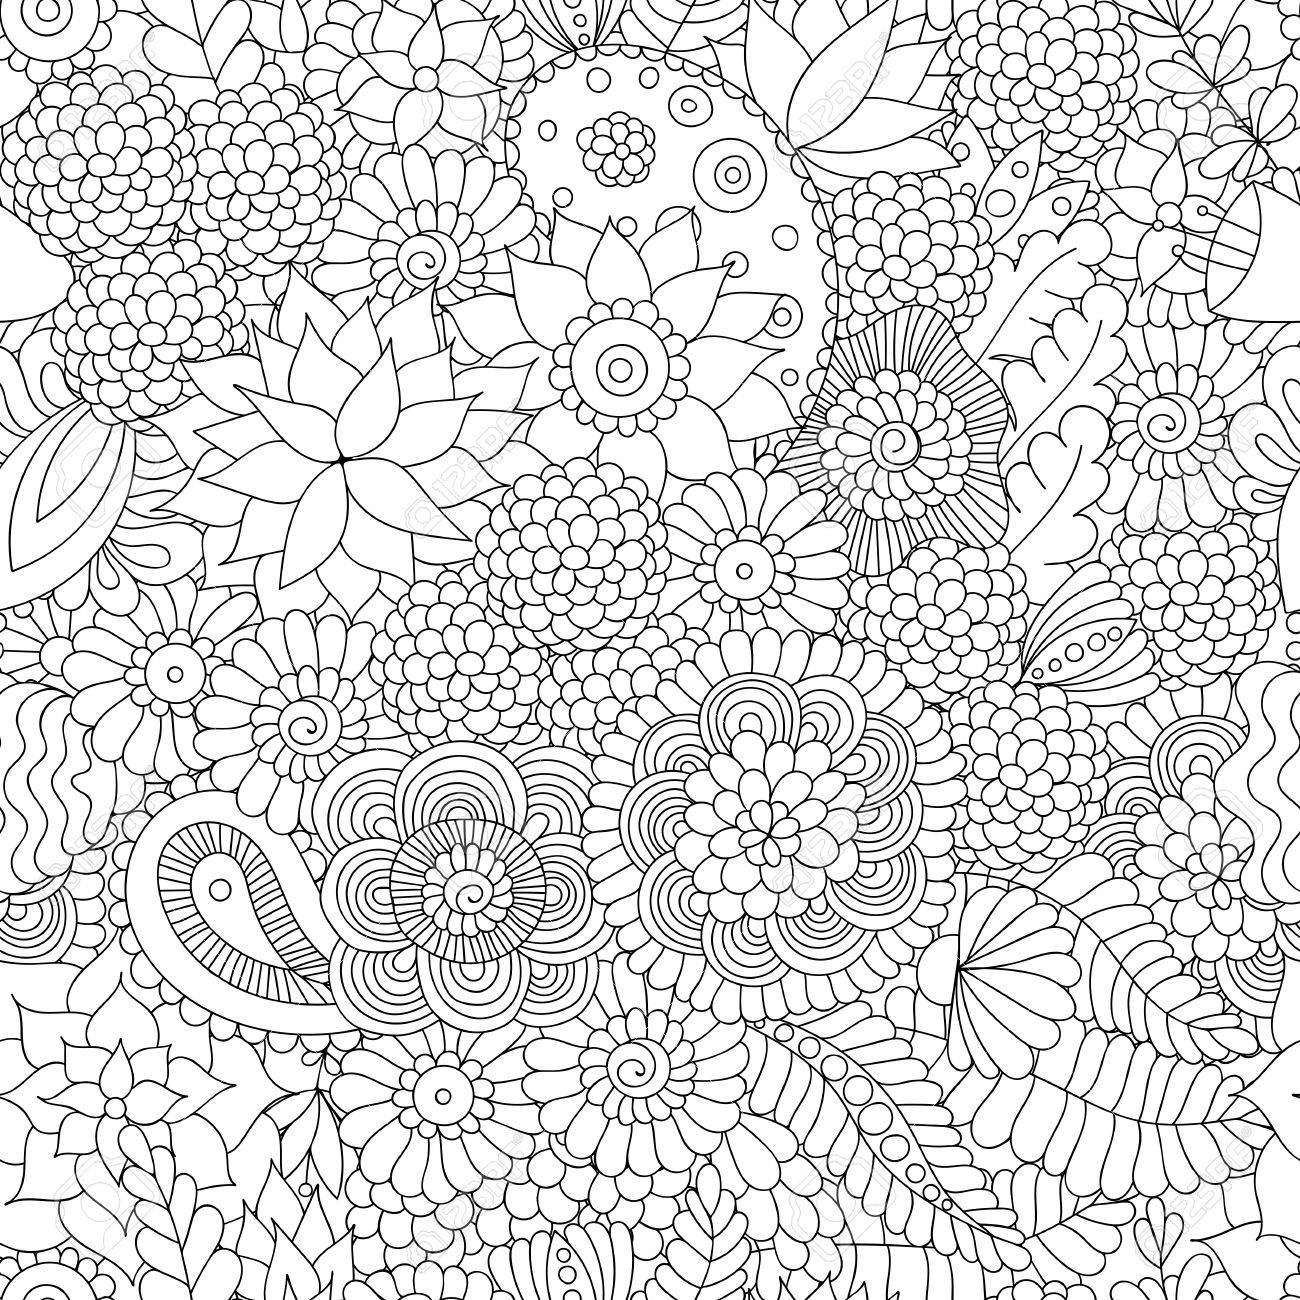 Doodle flower pattern black and white. - 47845946